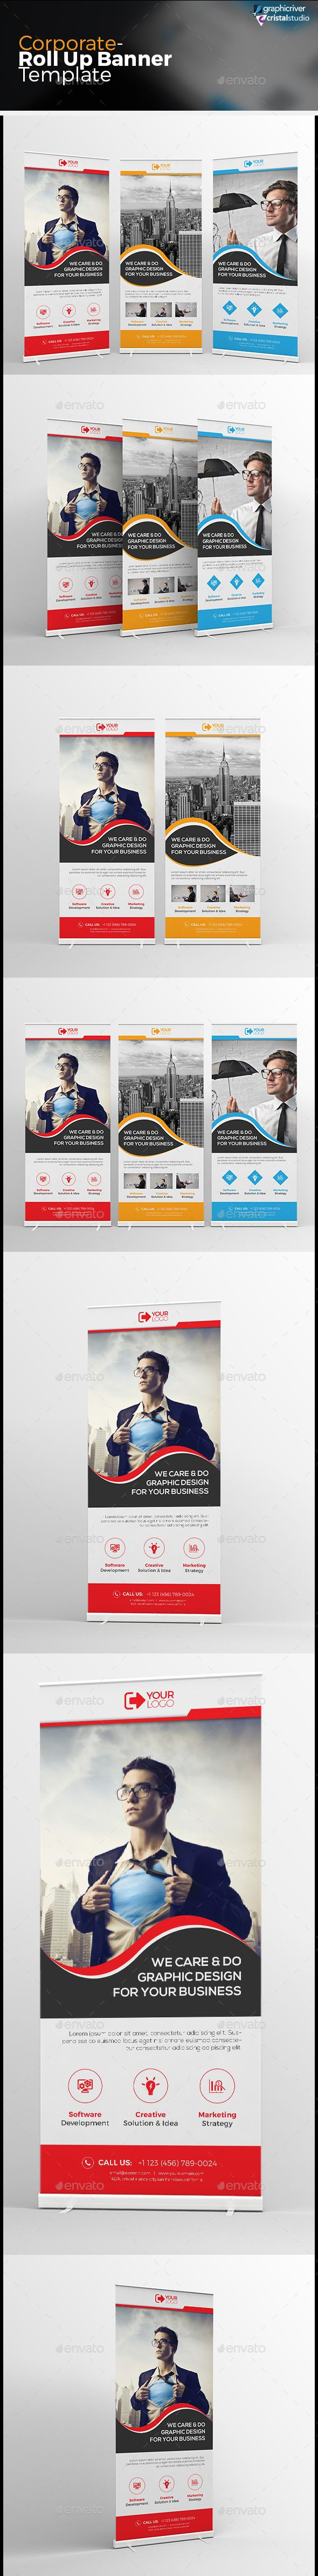 Corporate #Roll-up Banner - #Signage Print Templates Download here: graphicriver...